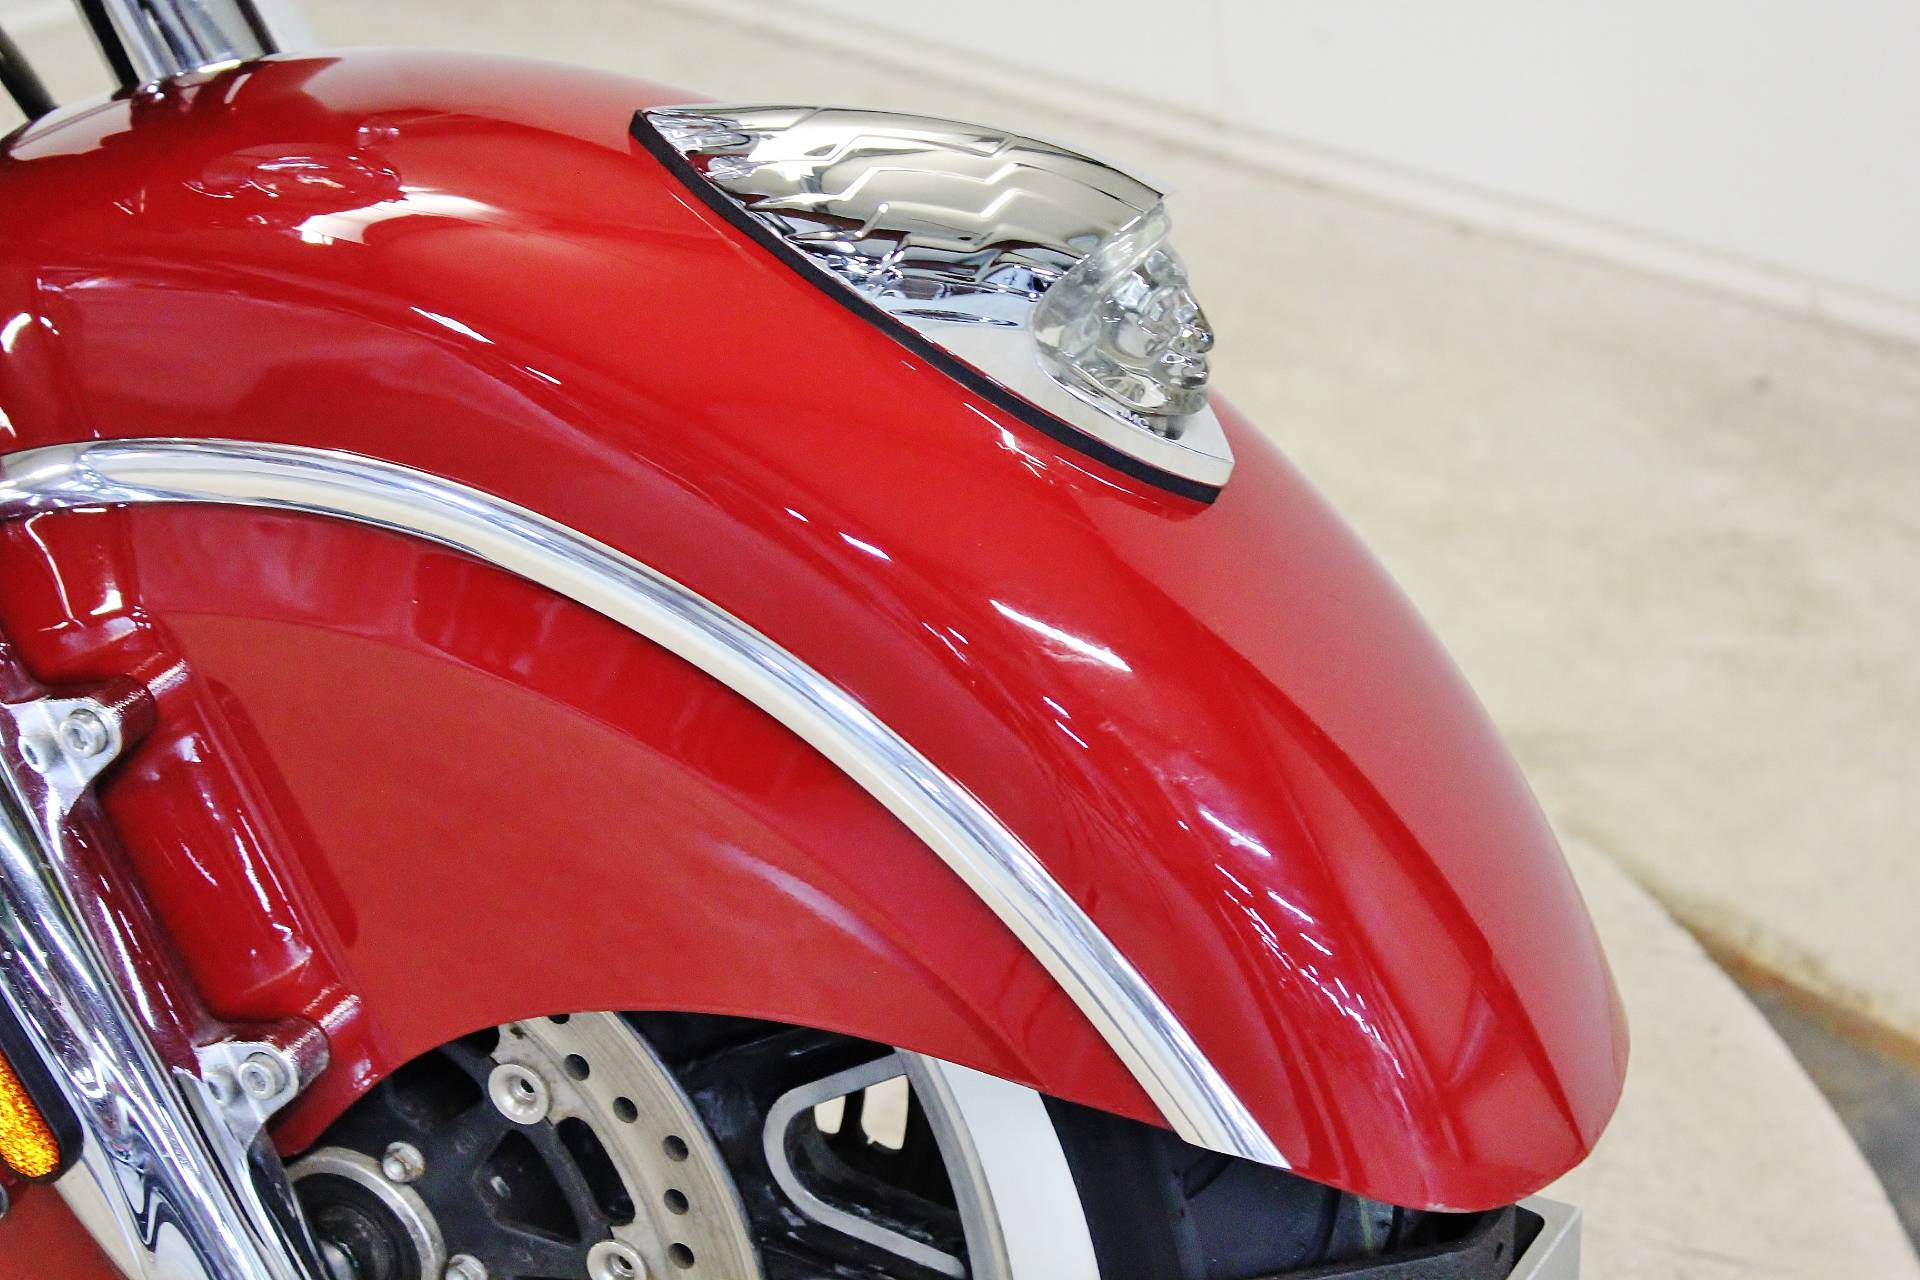 2014 Indian Chieftain™ in Pittsfield, Massachusetts